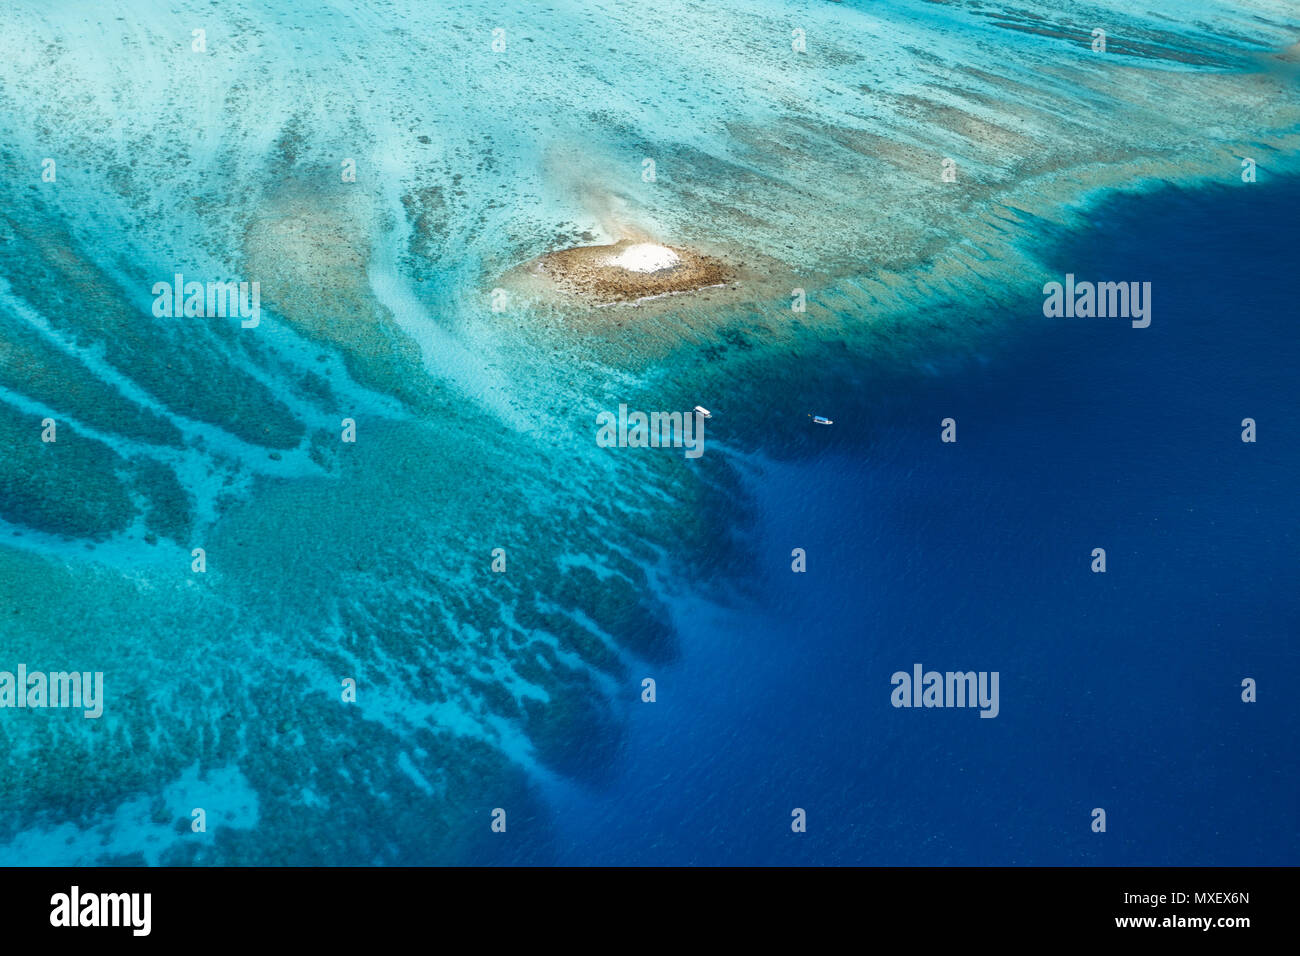 Colorful aerial view of large coral reef surrounding tiny white sandbar island with boats approaching - Stock Image